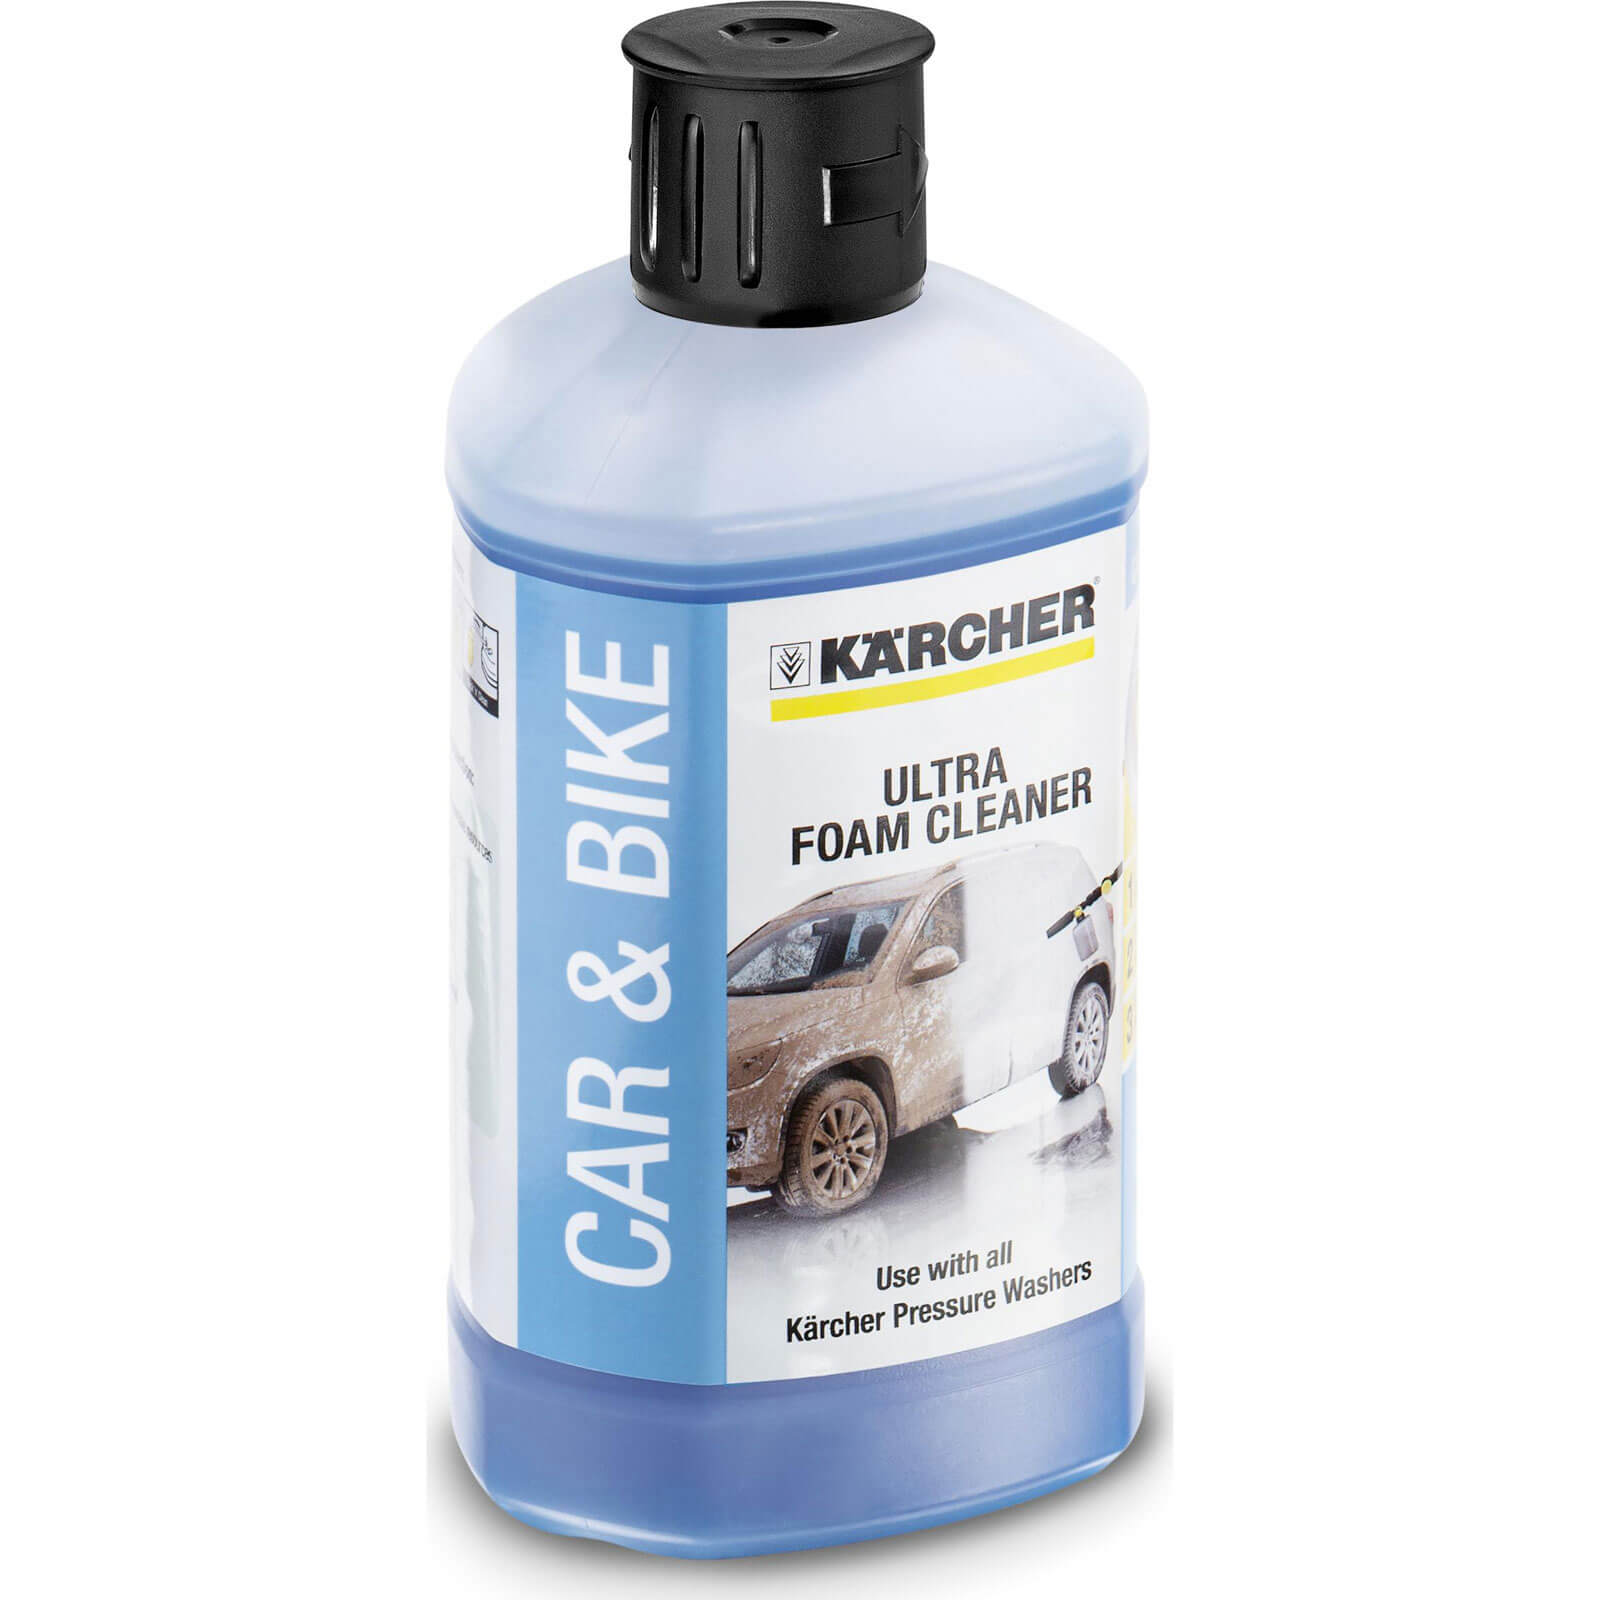 Karcher Ultra Foam Cleaning Detergent for Pressure Washers 1l